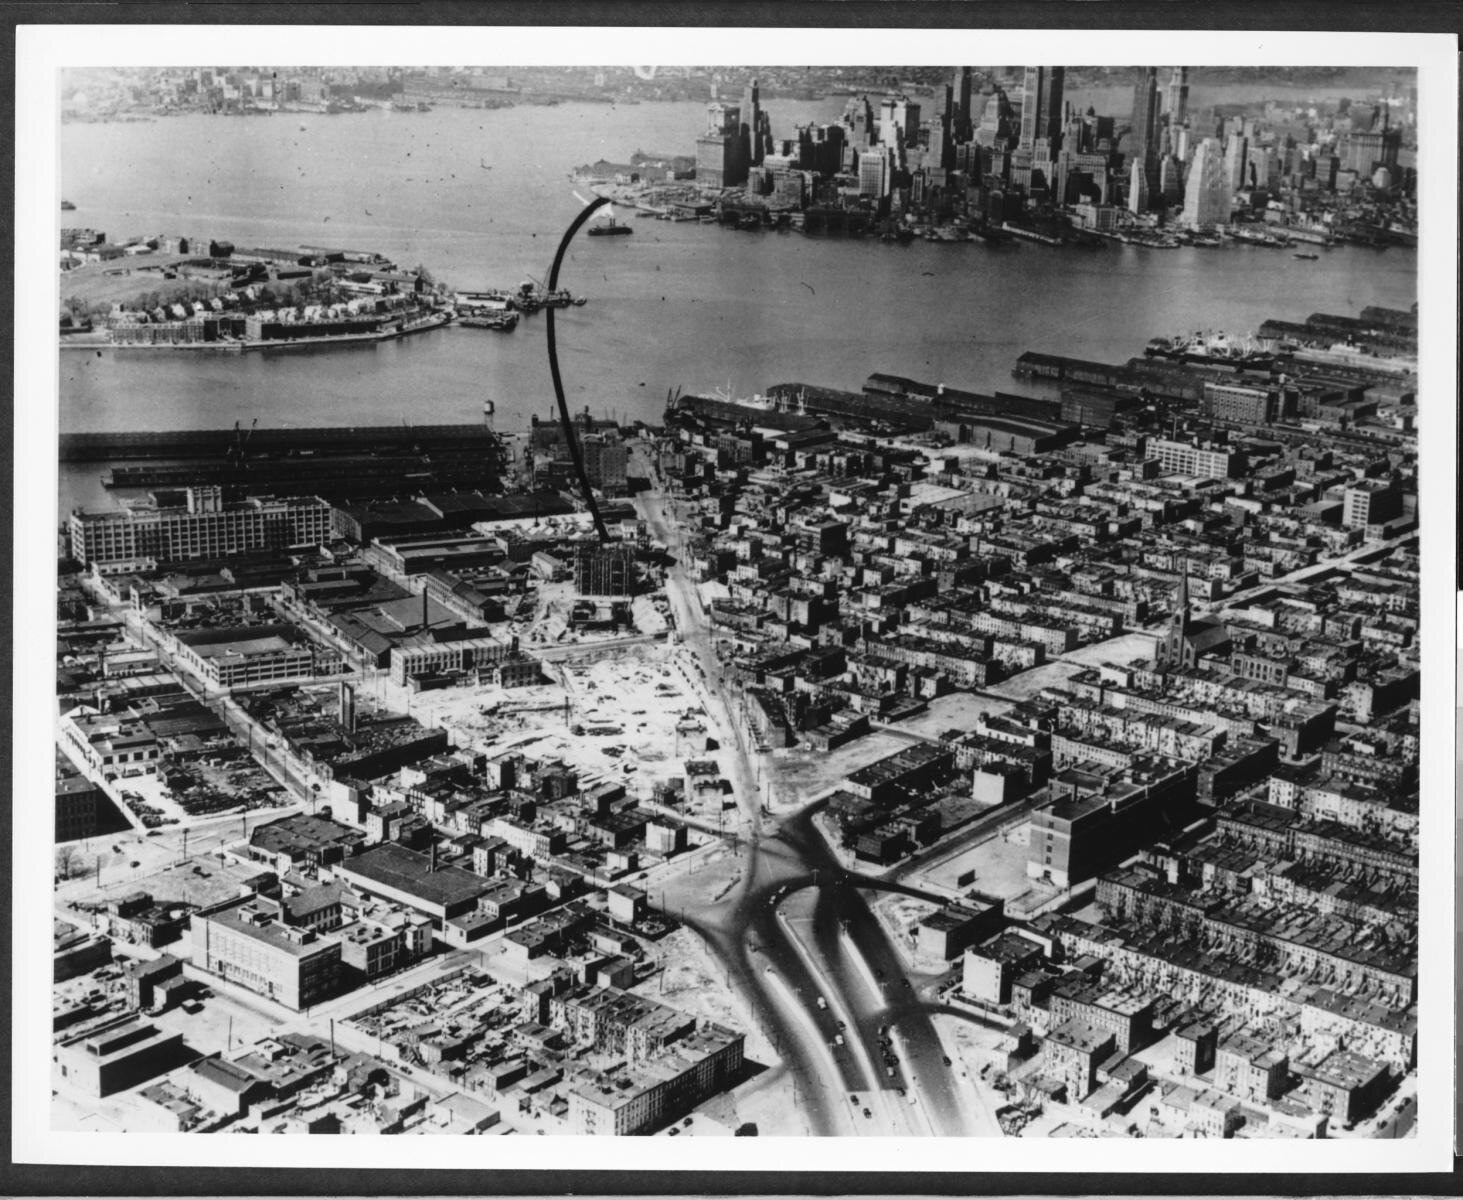 Aerial photograph of Red Hook, Brooklyn-Battery Tunnel, construction. Brooklyn Daily Eagle photographs, Brooklyn Public Library Collection.